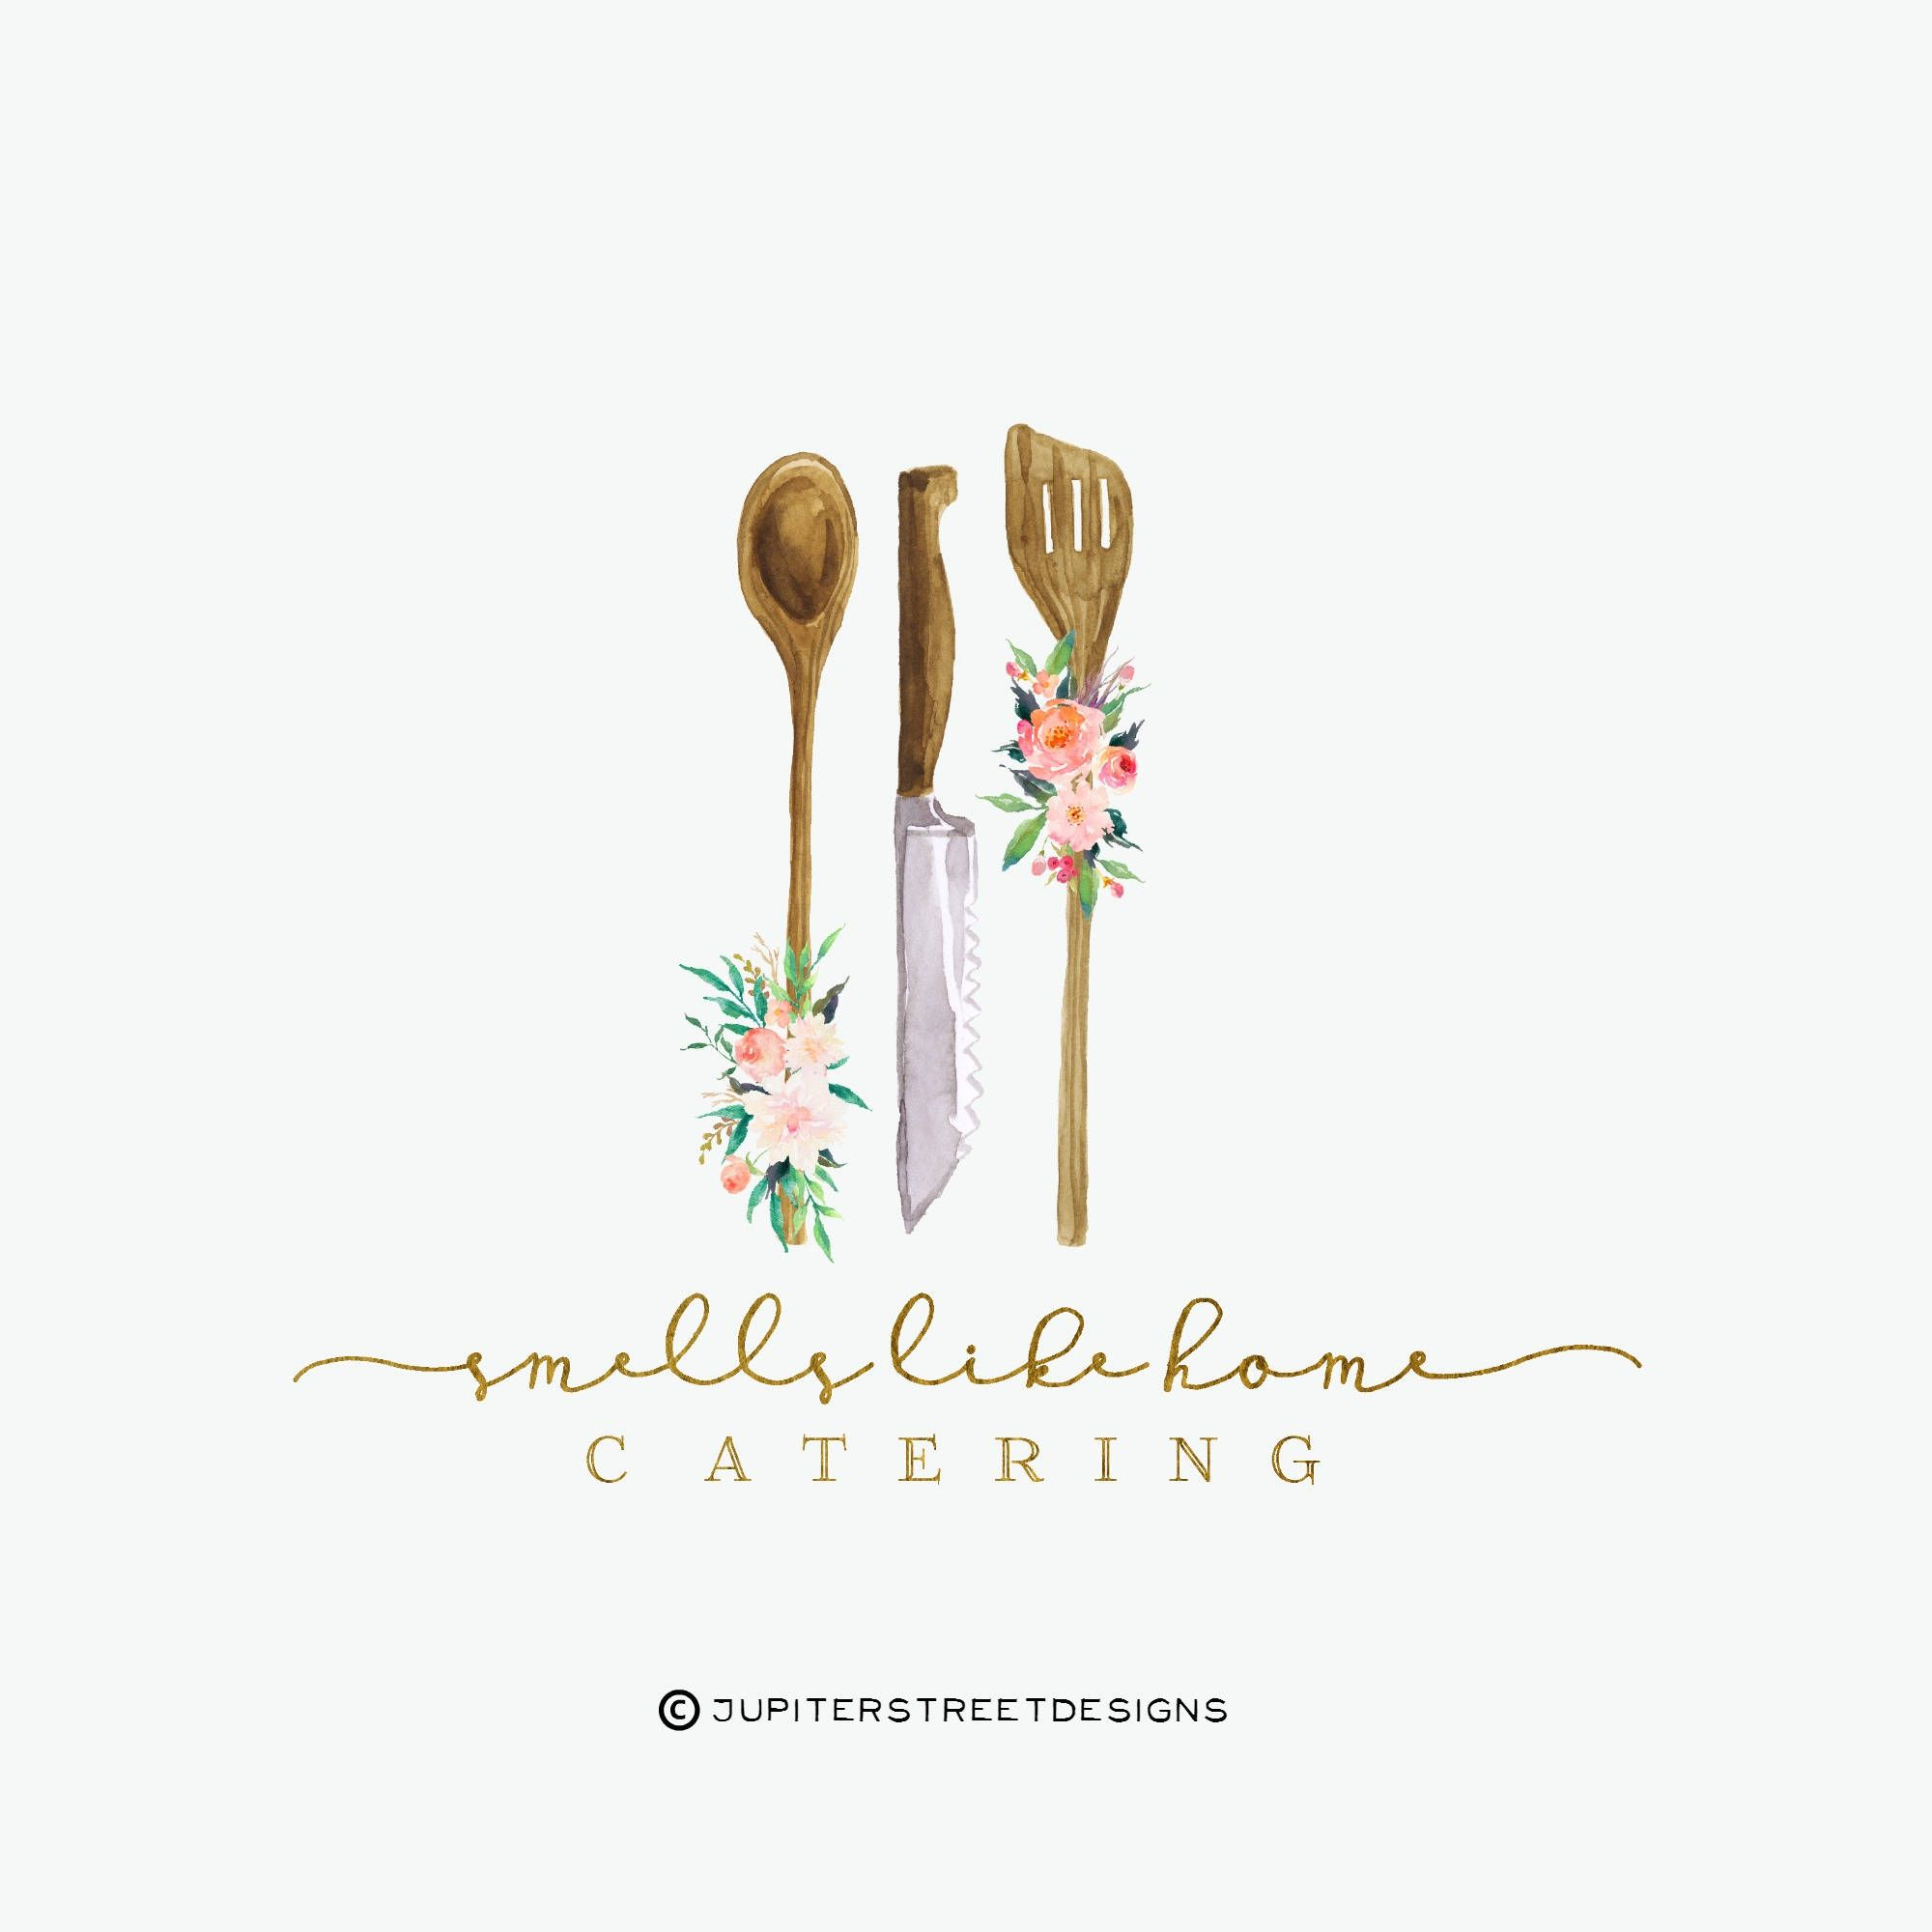 Kitchen Logo, Catering Logo, Utensil Logo, Flower Logo